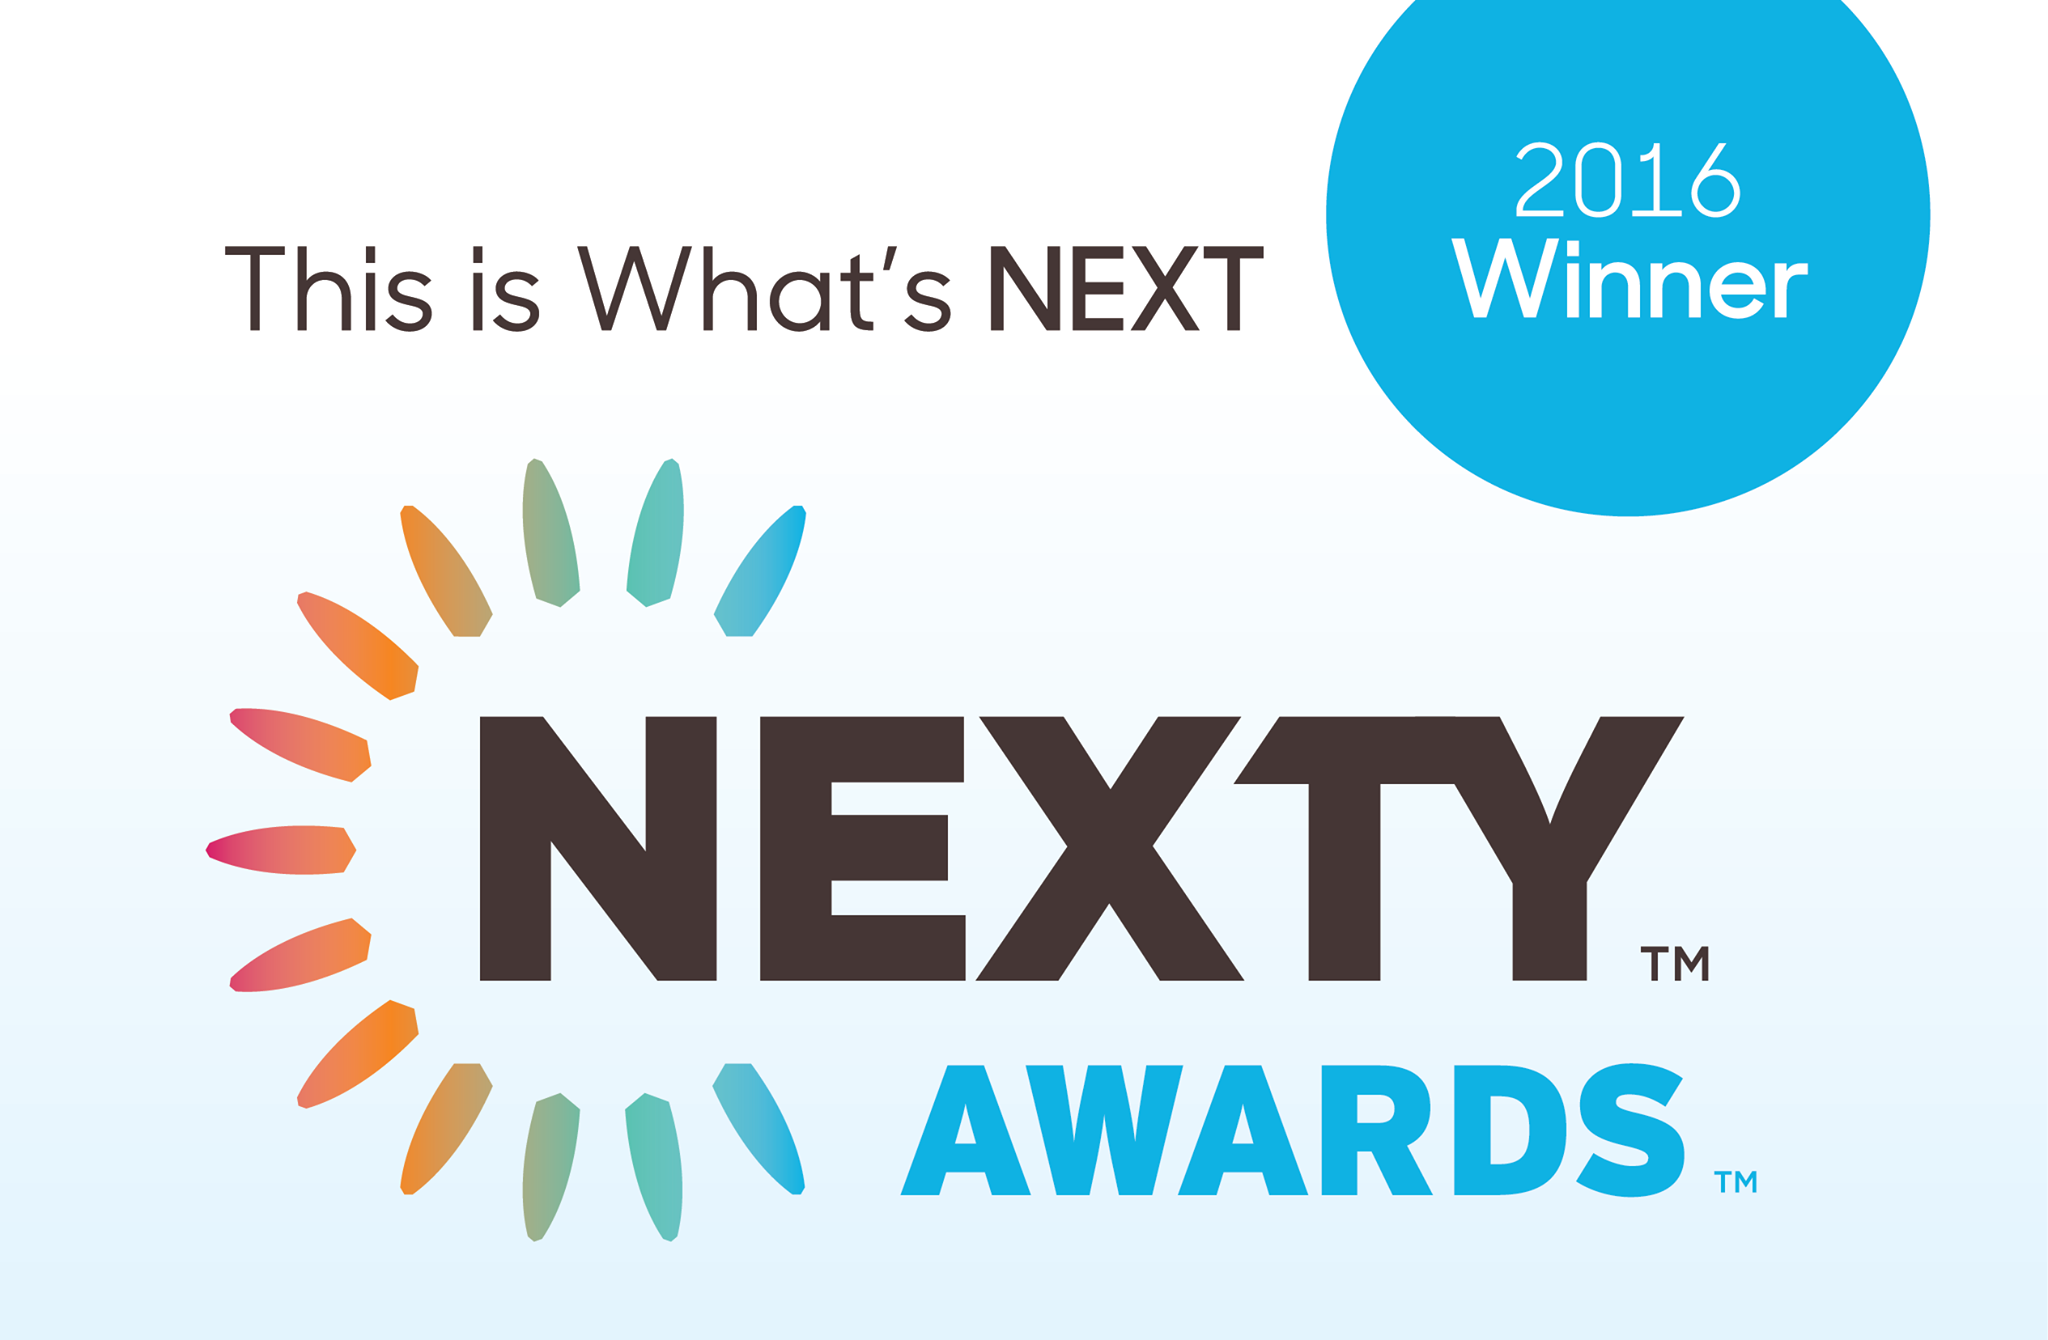 """2016 Nexty Award - Our solar dried organic mangos took home New Hope Network's Nexty Award as the """"Best New Transparently Sourced Product"""" at Natural Products Expo East 2016."""